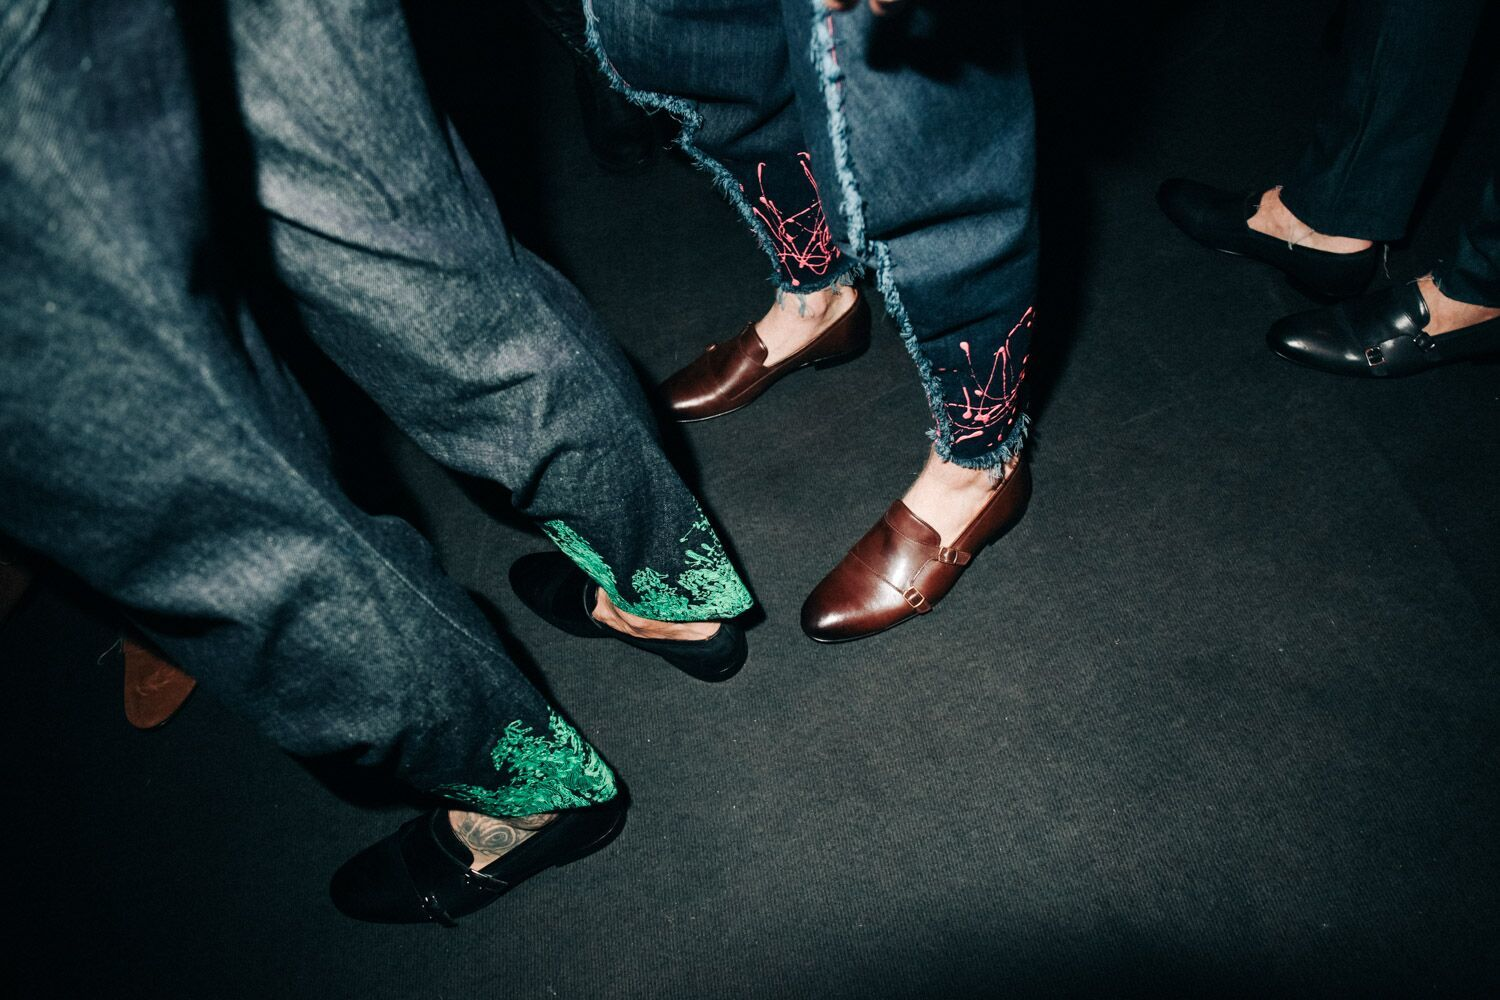 MBFW Russia - BACKSTAGE